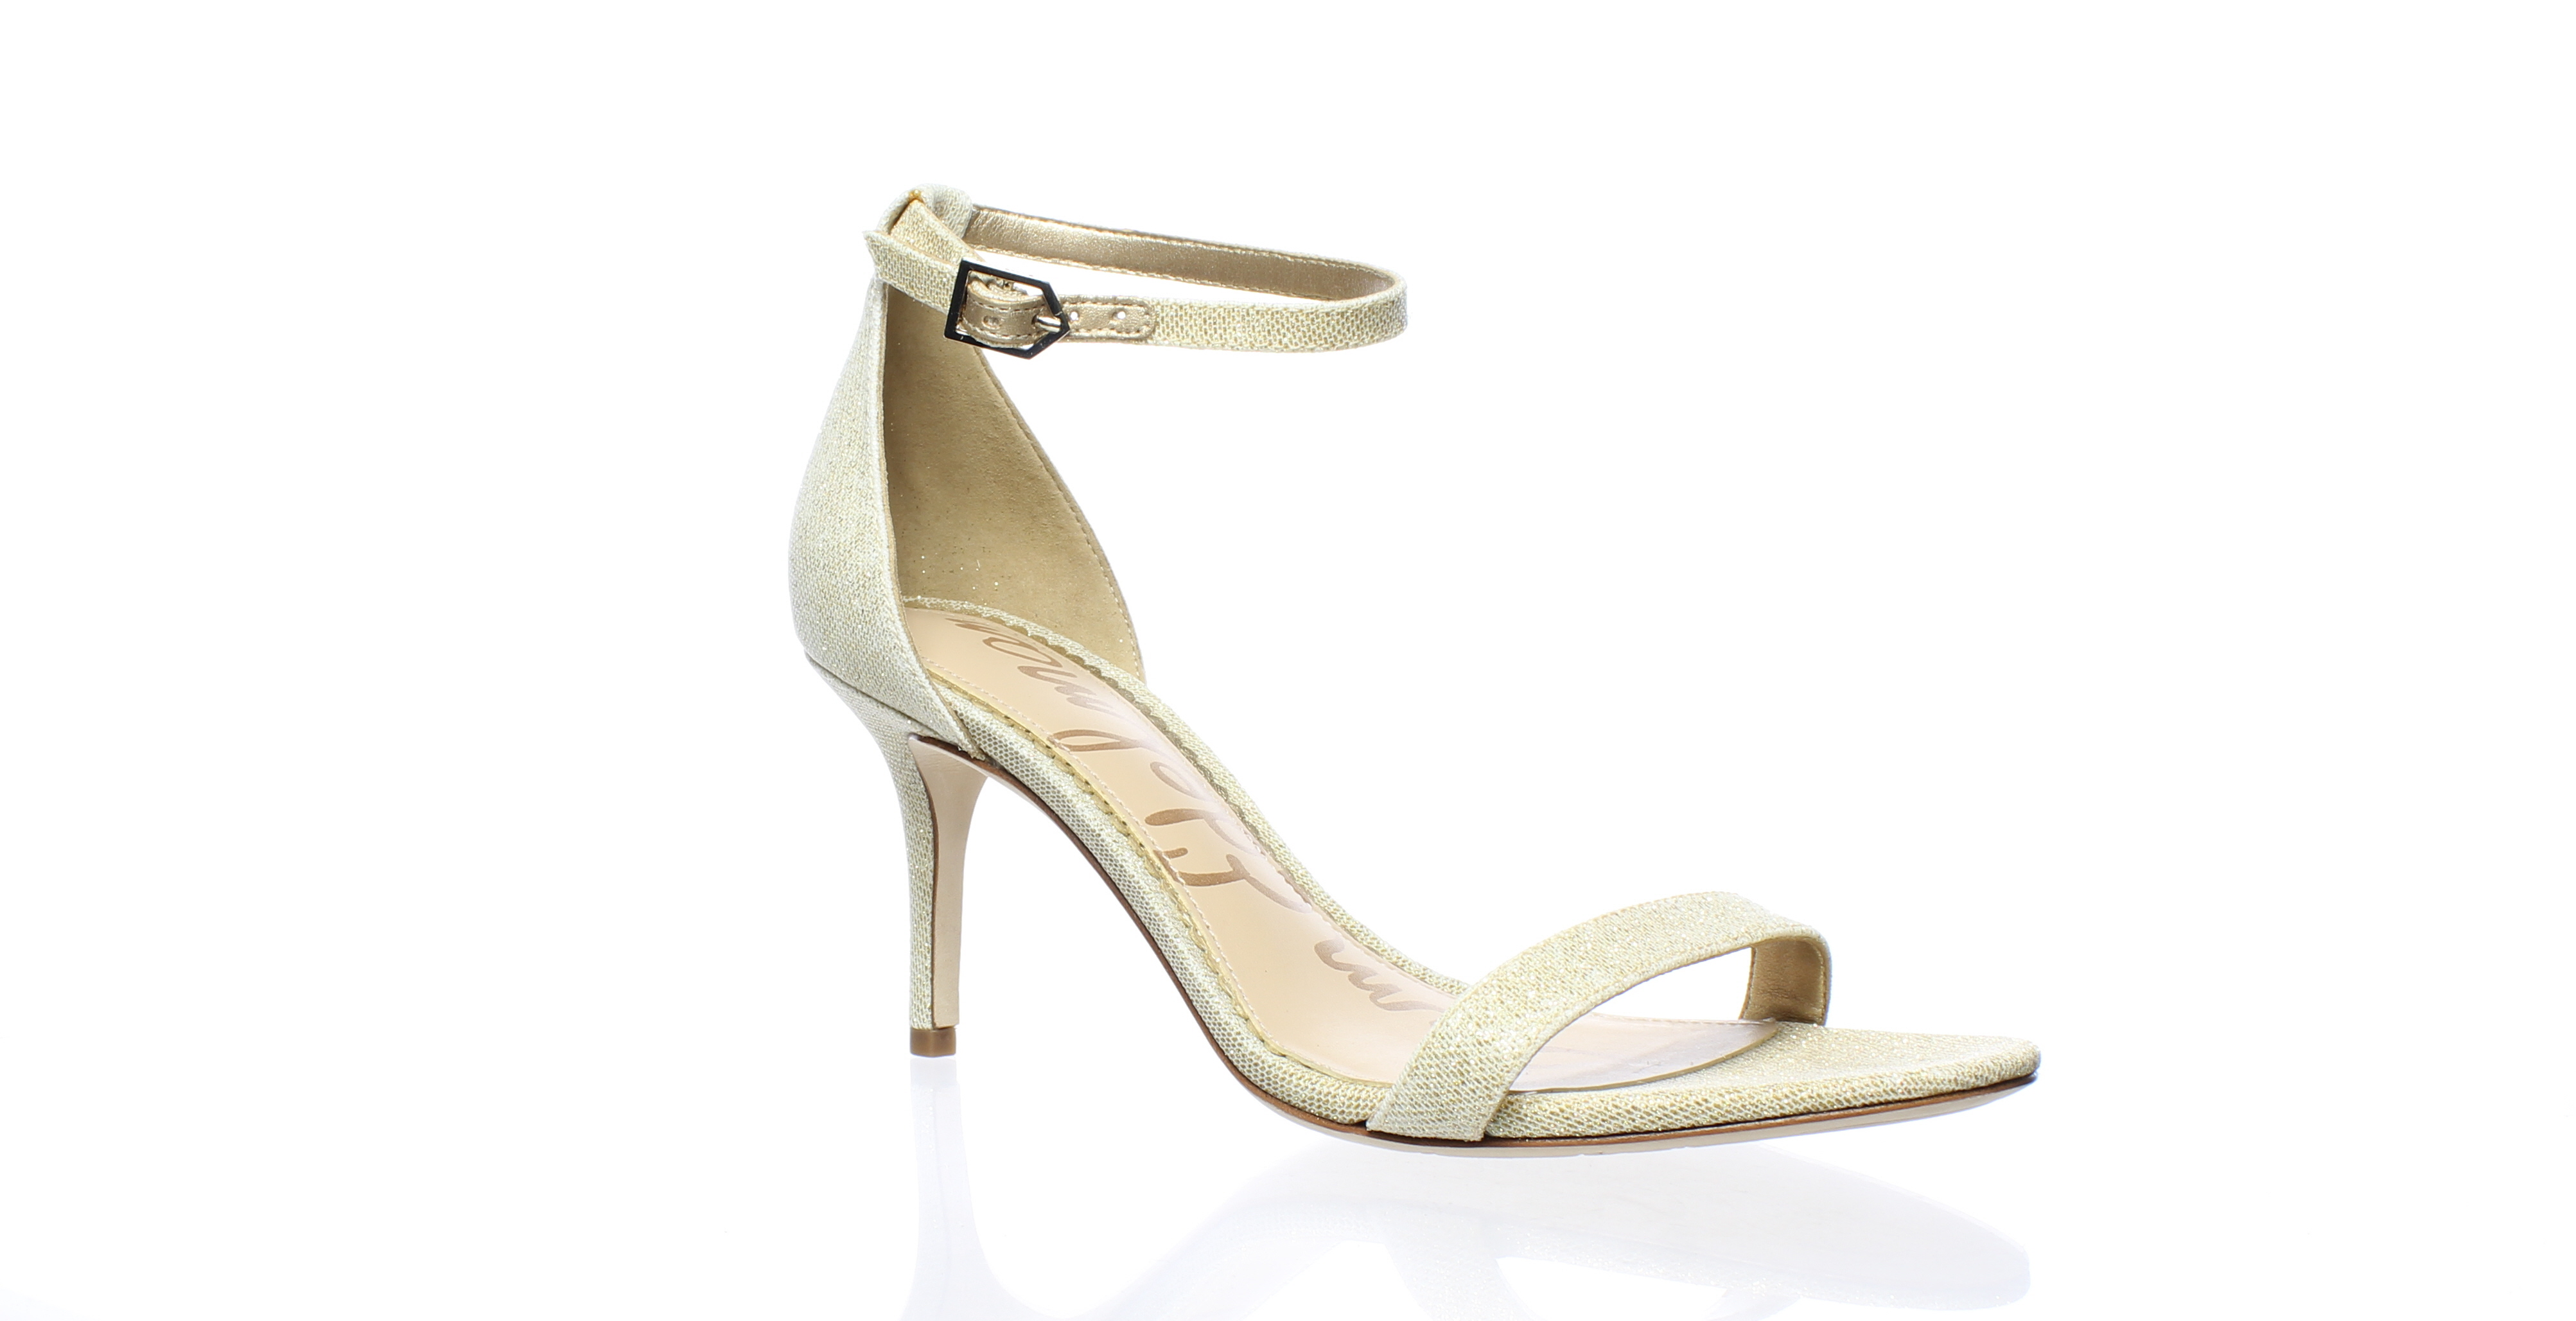 6366bbead Details about New Sam Edelman Womens Patti Gold Ankle Strap Heels Size 6.5